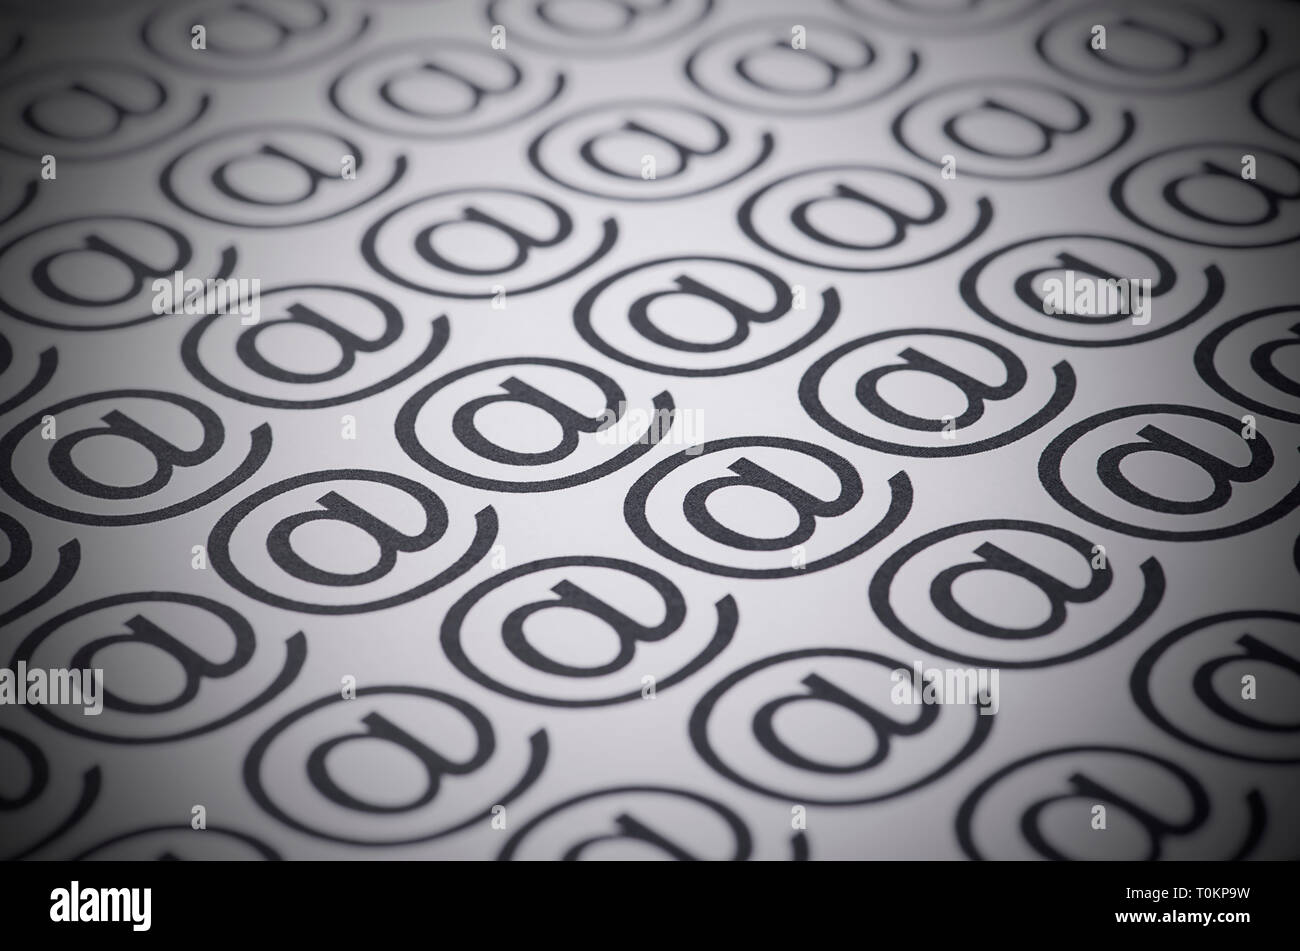 E-mail marks on a white background, selective focus image - Stock Image